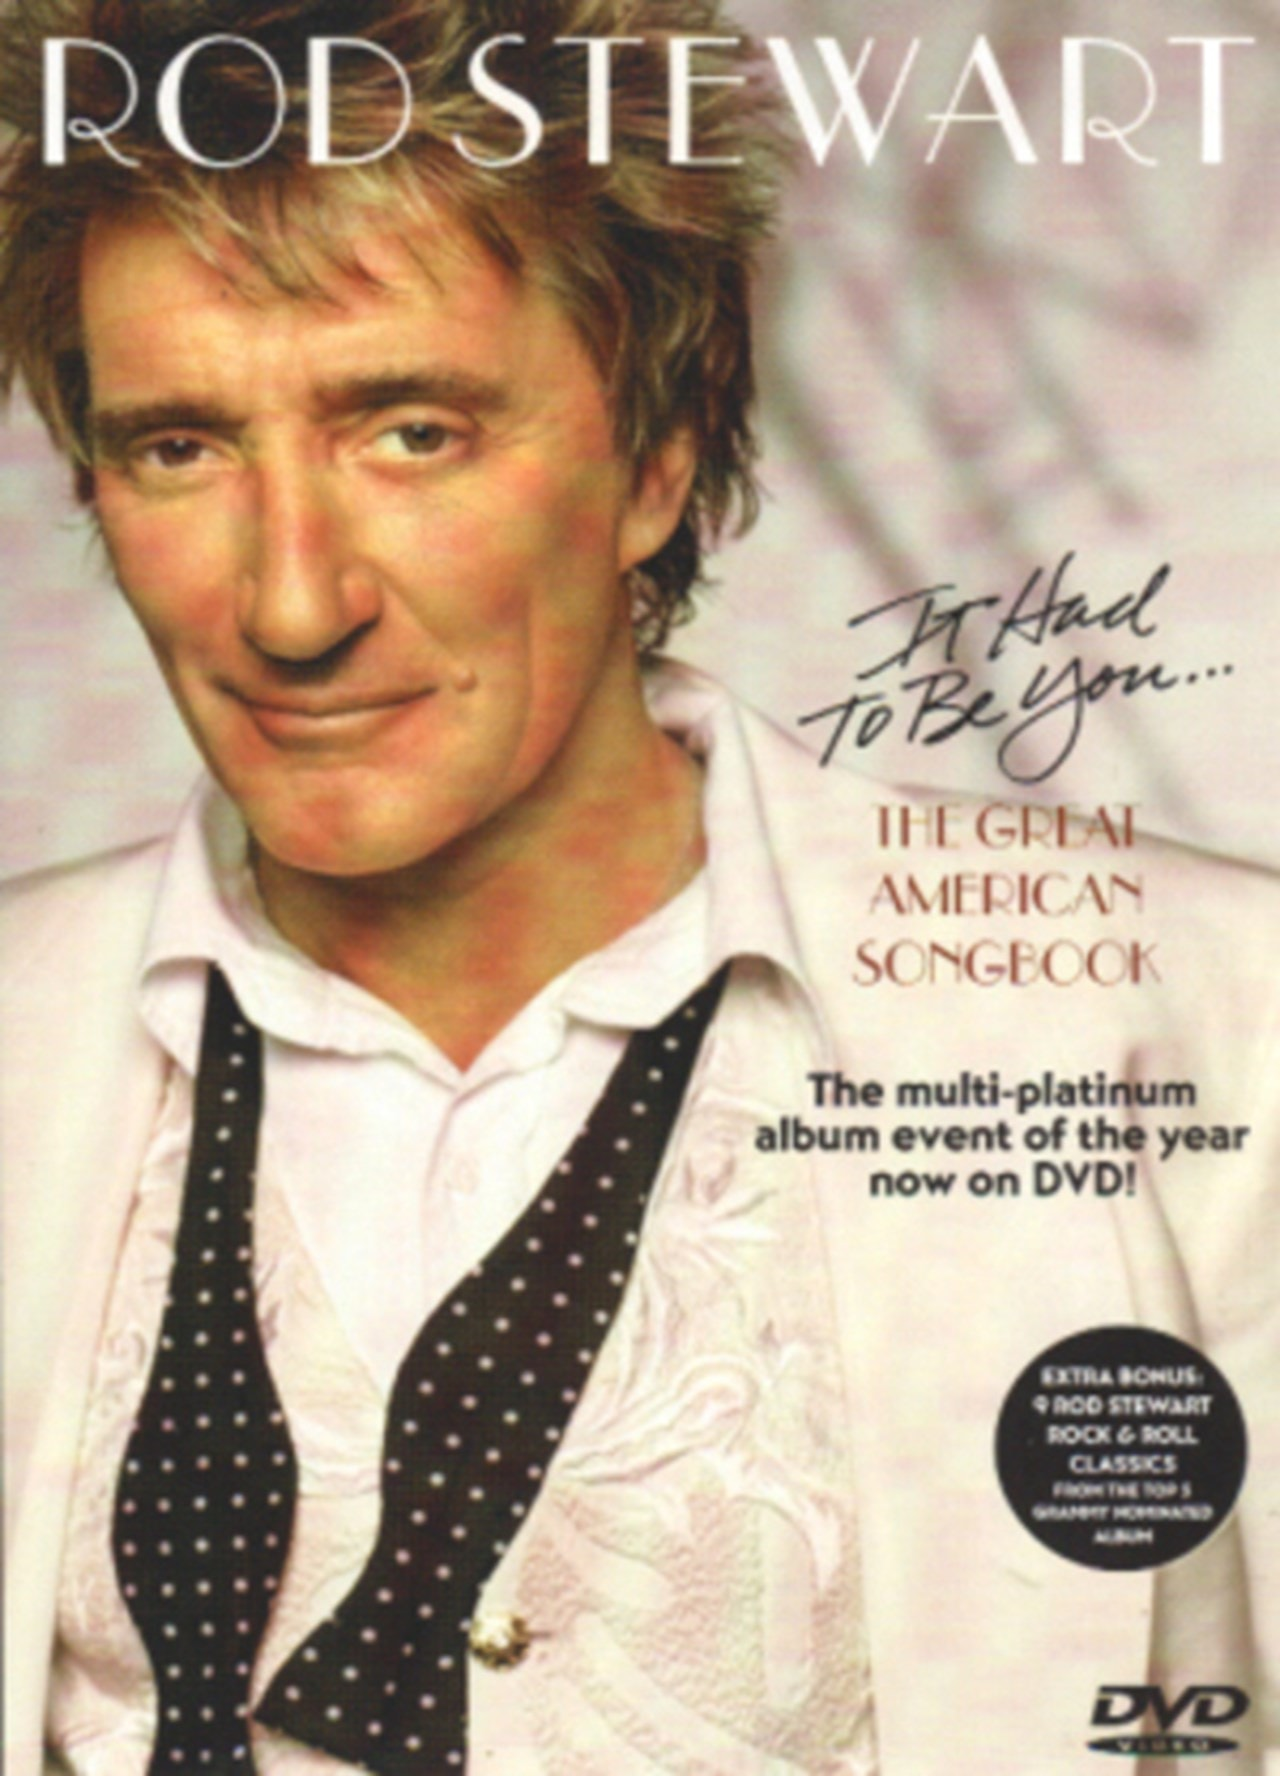 Rod Stewart: It Had to Be You - The Great American Songbook - 1